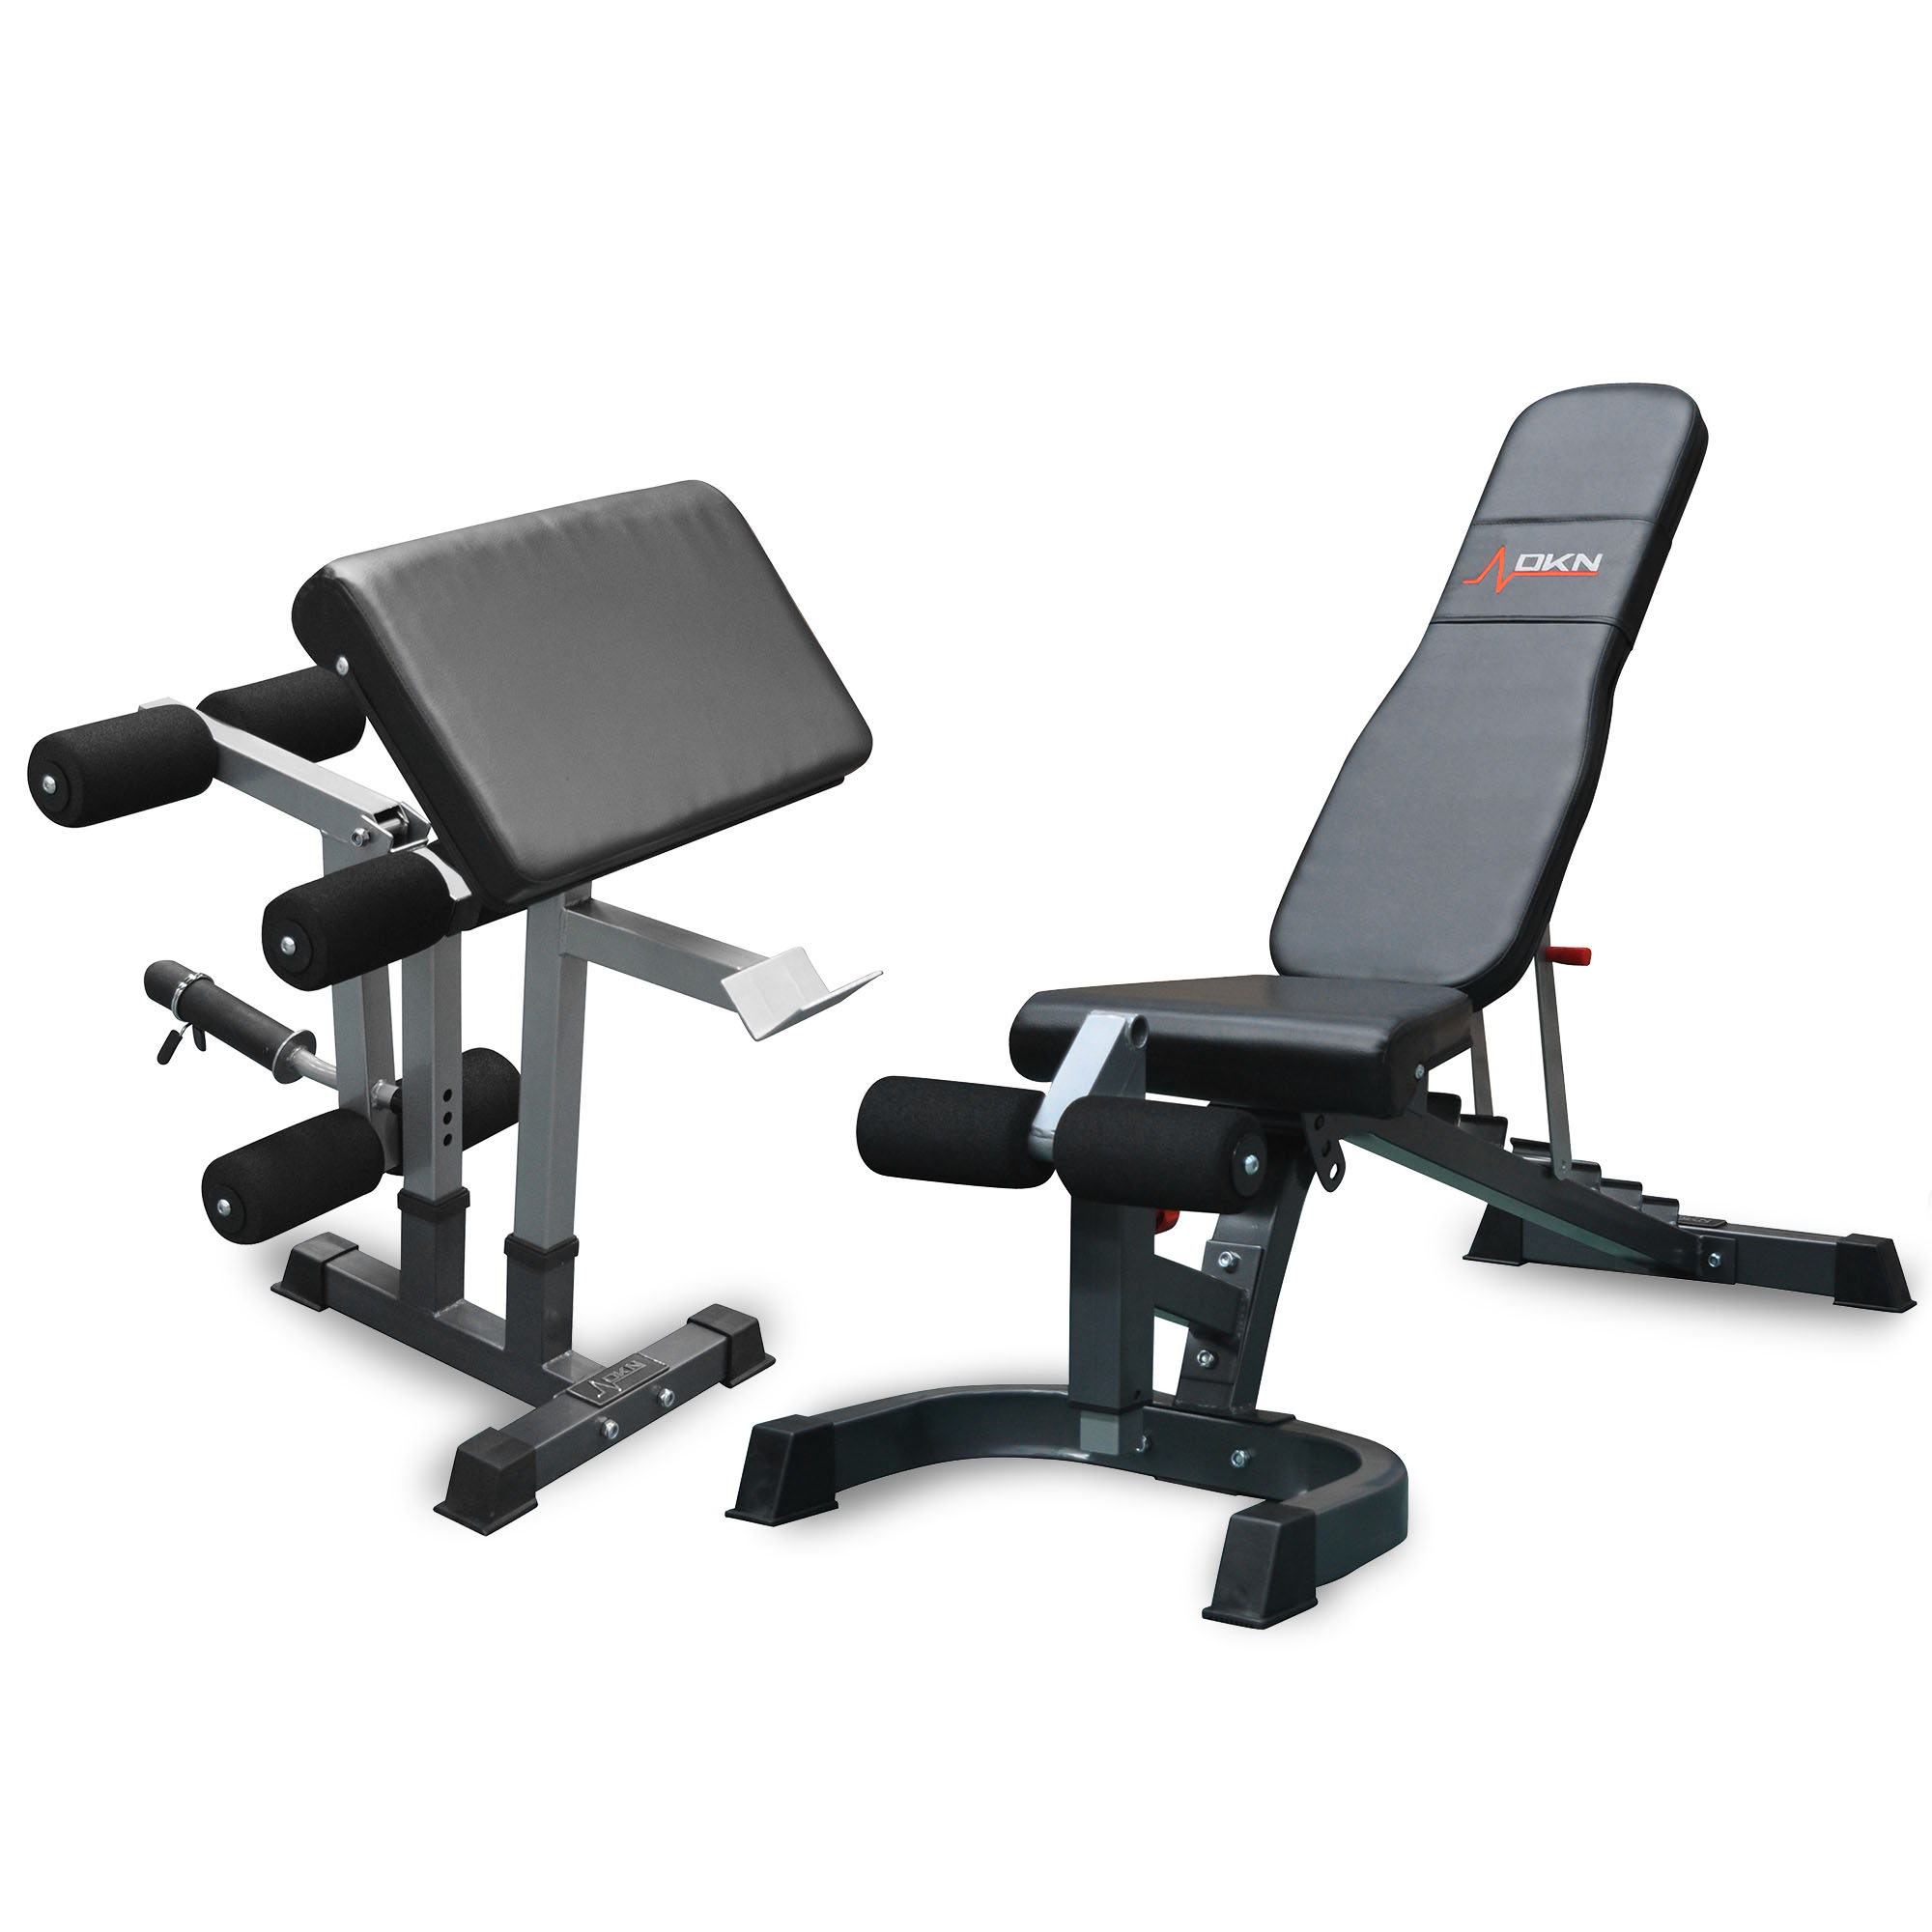 Buy Cheap Preacher Bench Compare Weight Training Prices For Best Uk Deals